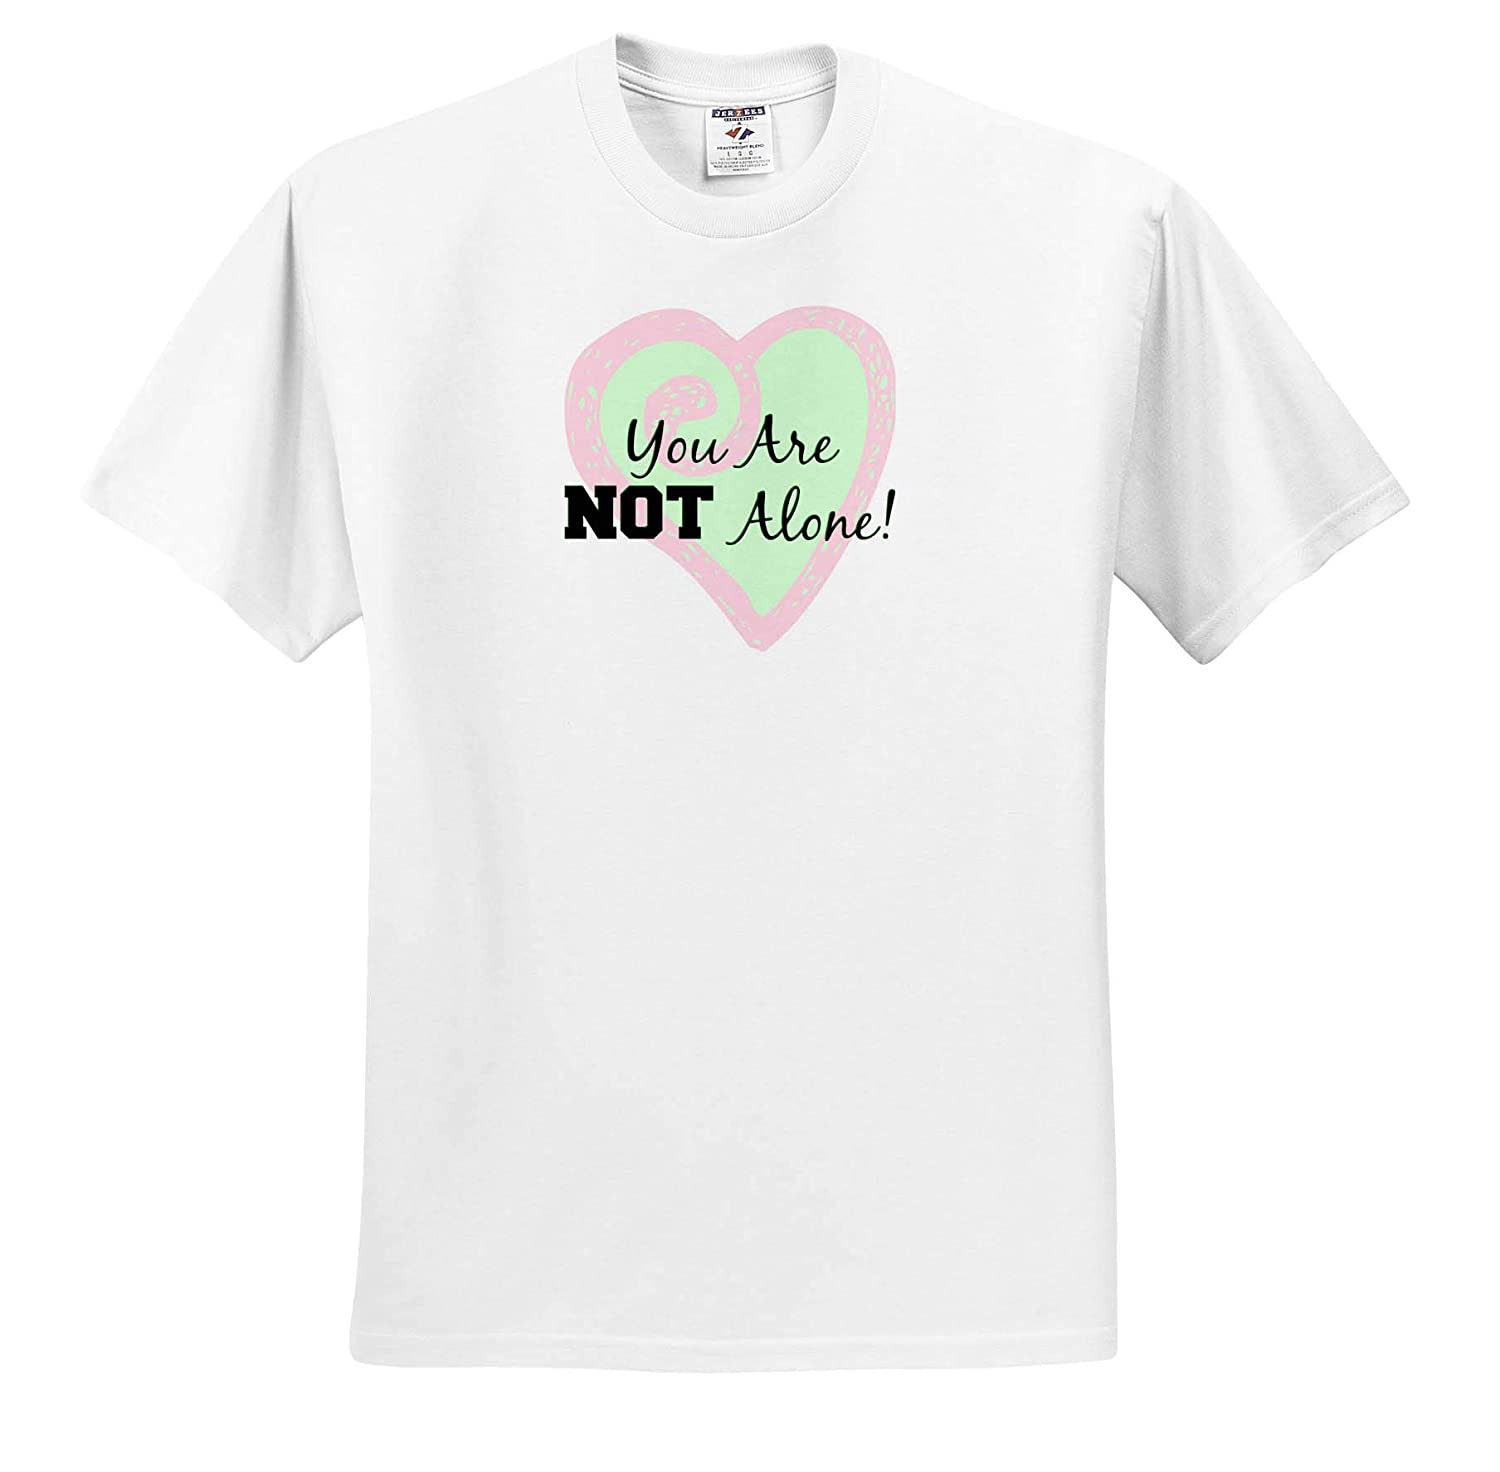 3dRose Carrie Merchant Quote Image Adult T-Shirt XL ts/_317176 Image of You are Not Alone